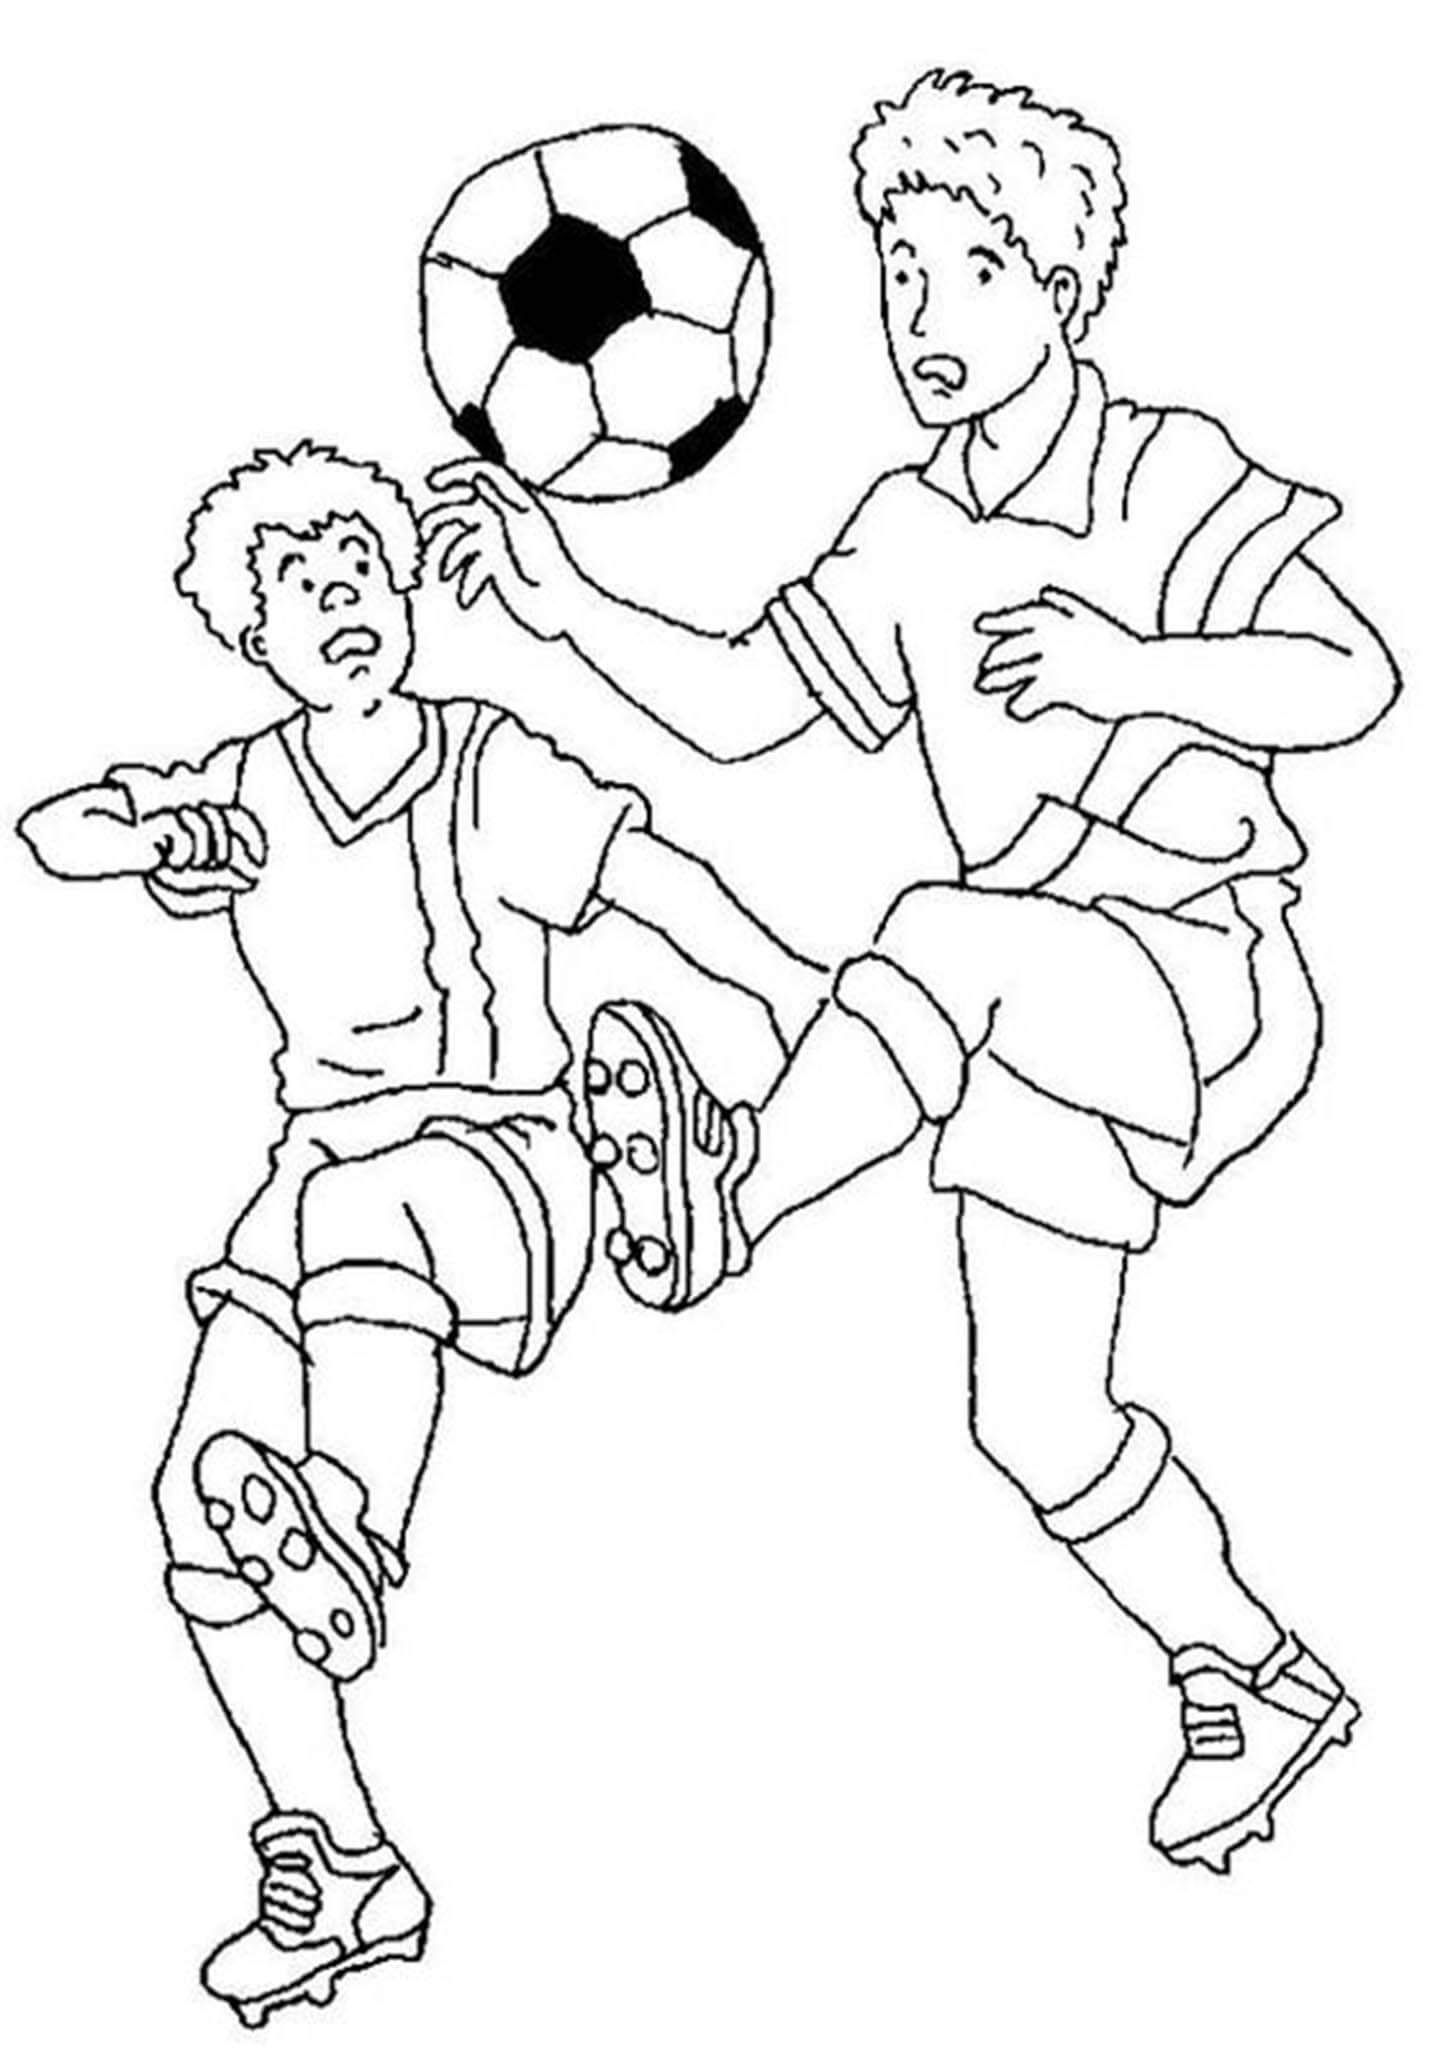 Free Easy To Print Soccer Coloring Pages In 2021 Sports Coloring Pages Football Coloring Pages Cartoon Coloring Pages